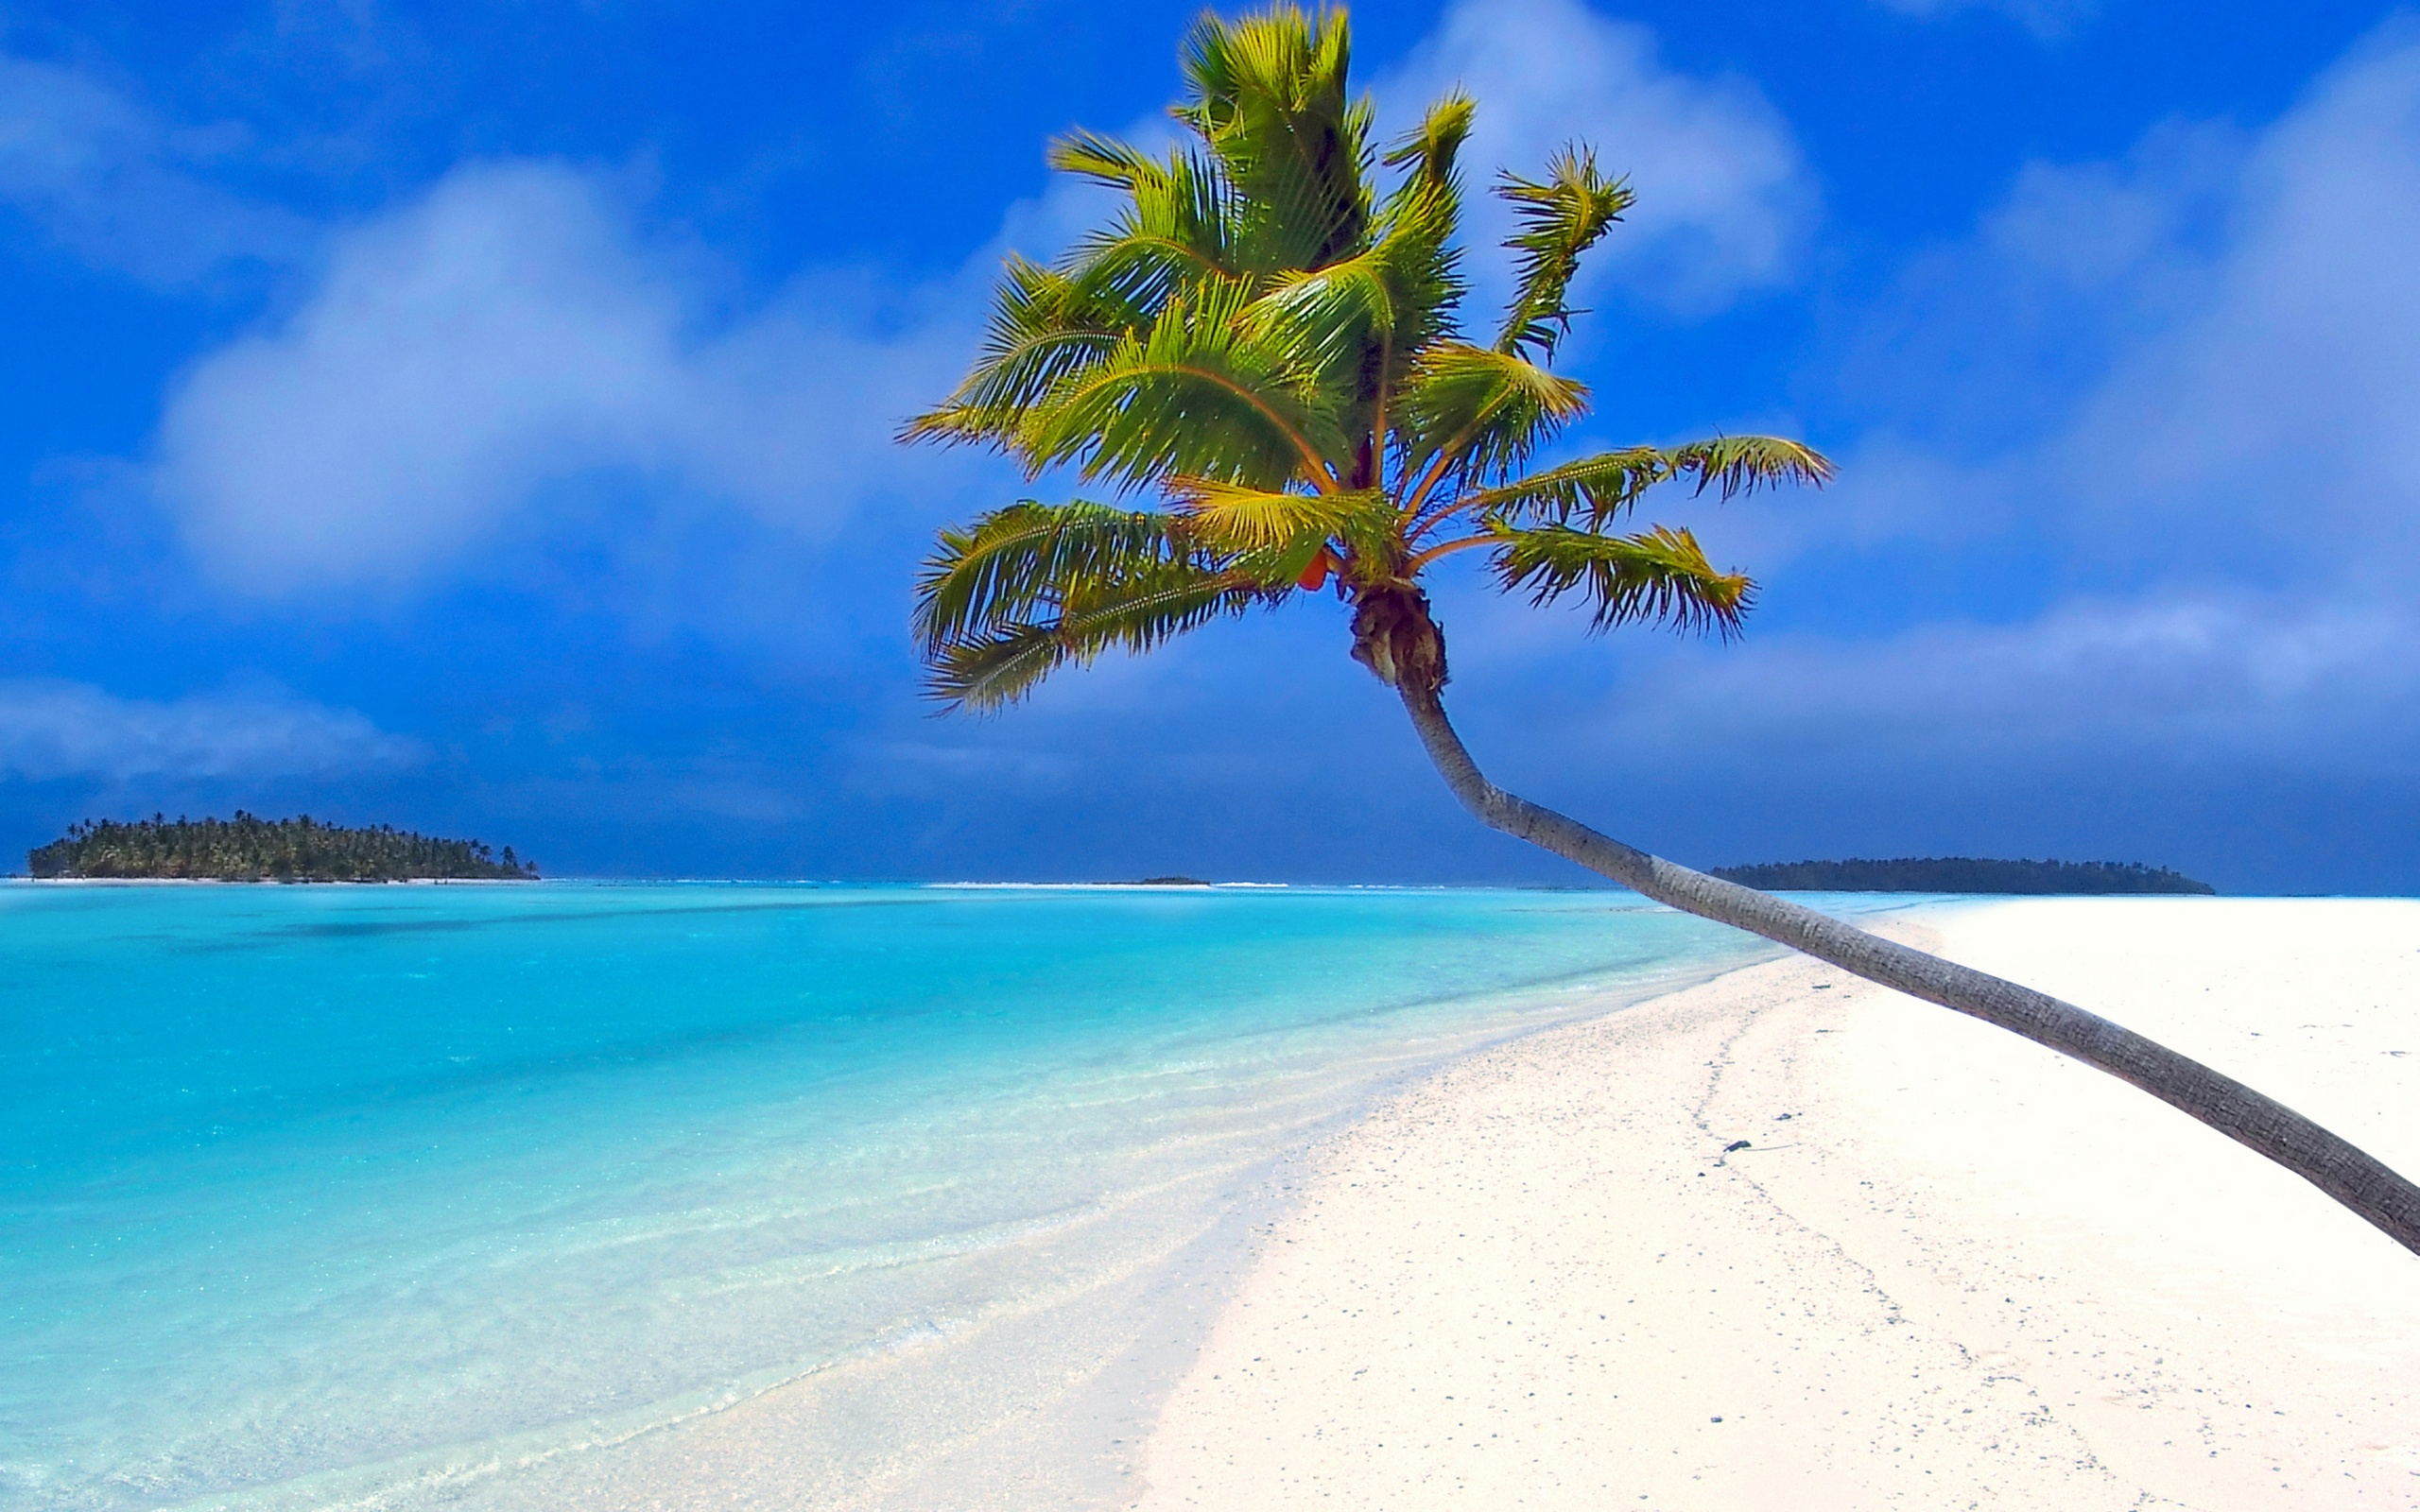 2560x1600 Isolated palm tree desktop wallpapers and stock photos